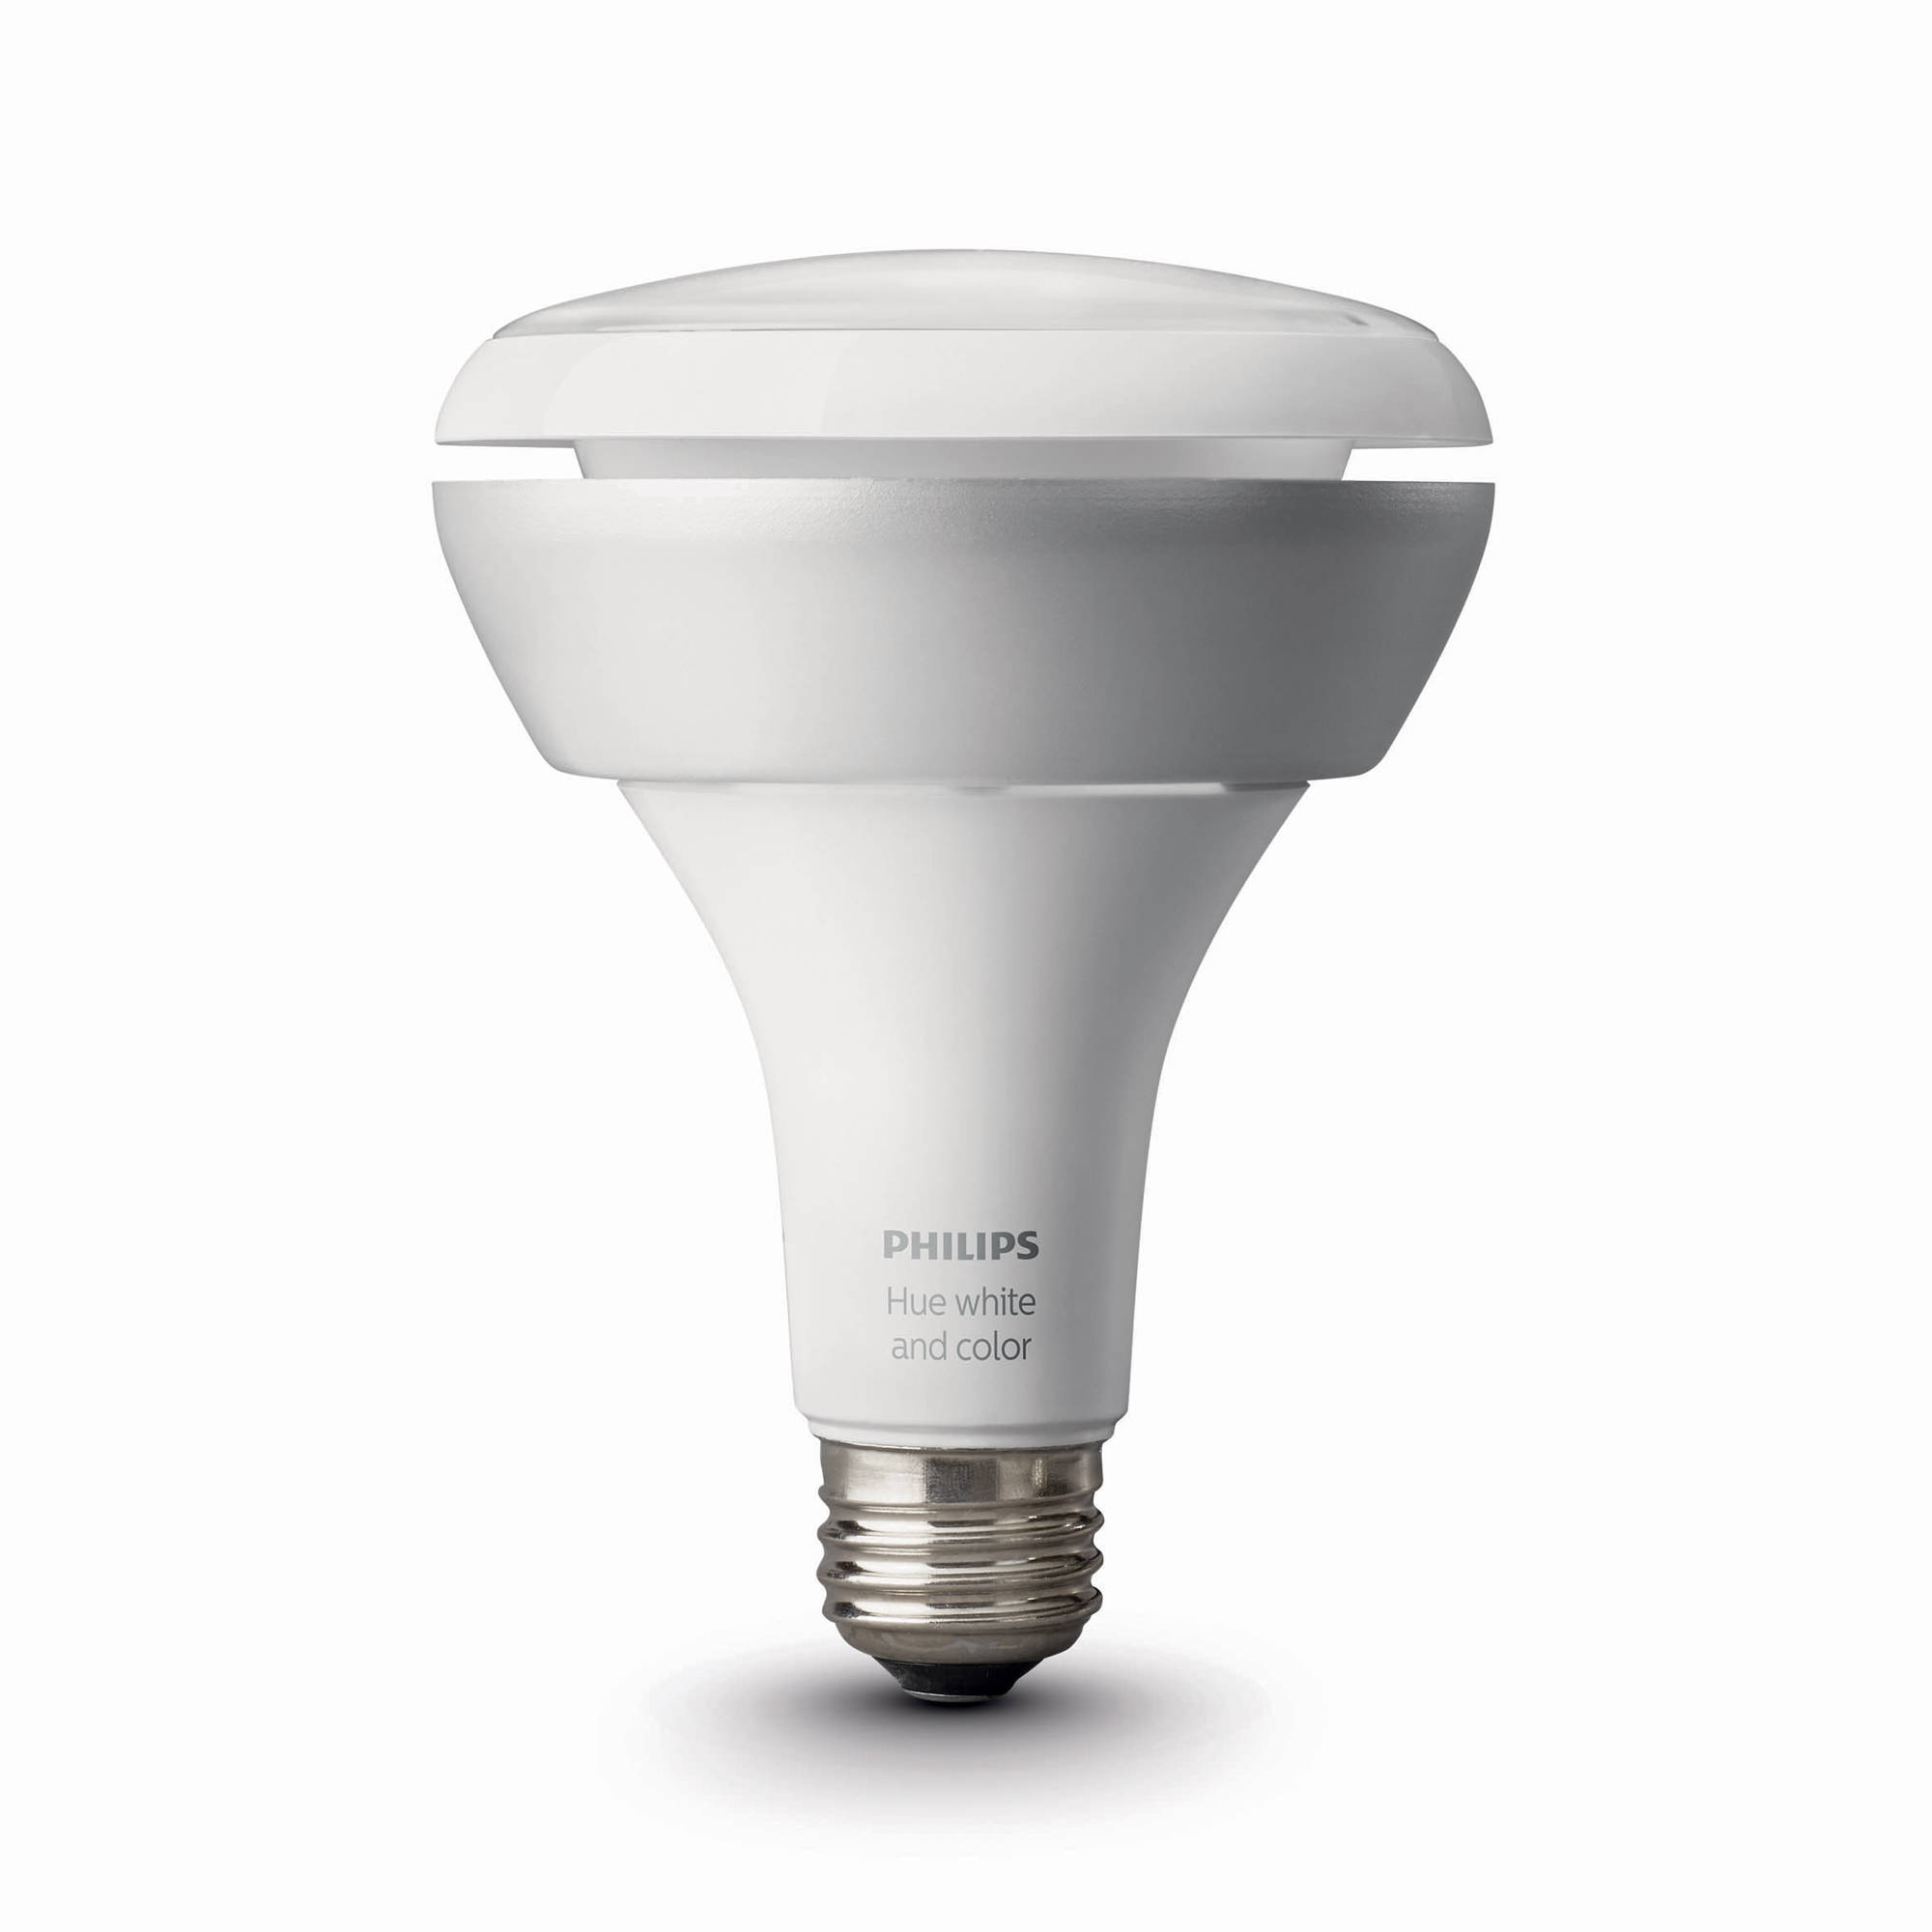 philips hue track lighting philips hue white and color ambiance br30 single bulb . philips hue track lighting ...  sc 1 st  Fireworks-portal.info & philips hue track lighting] - 53 images - best philips hue scenes ...